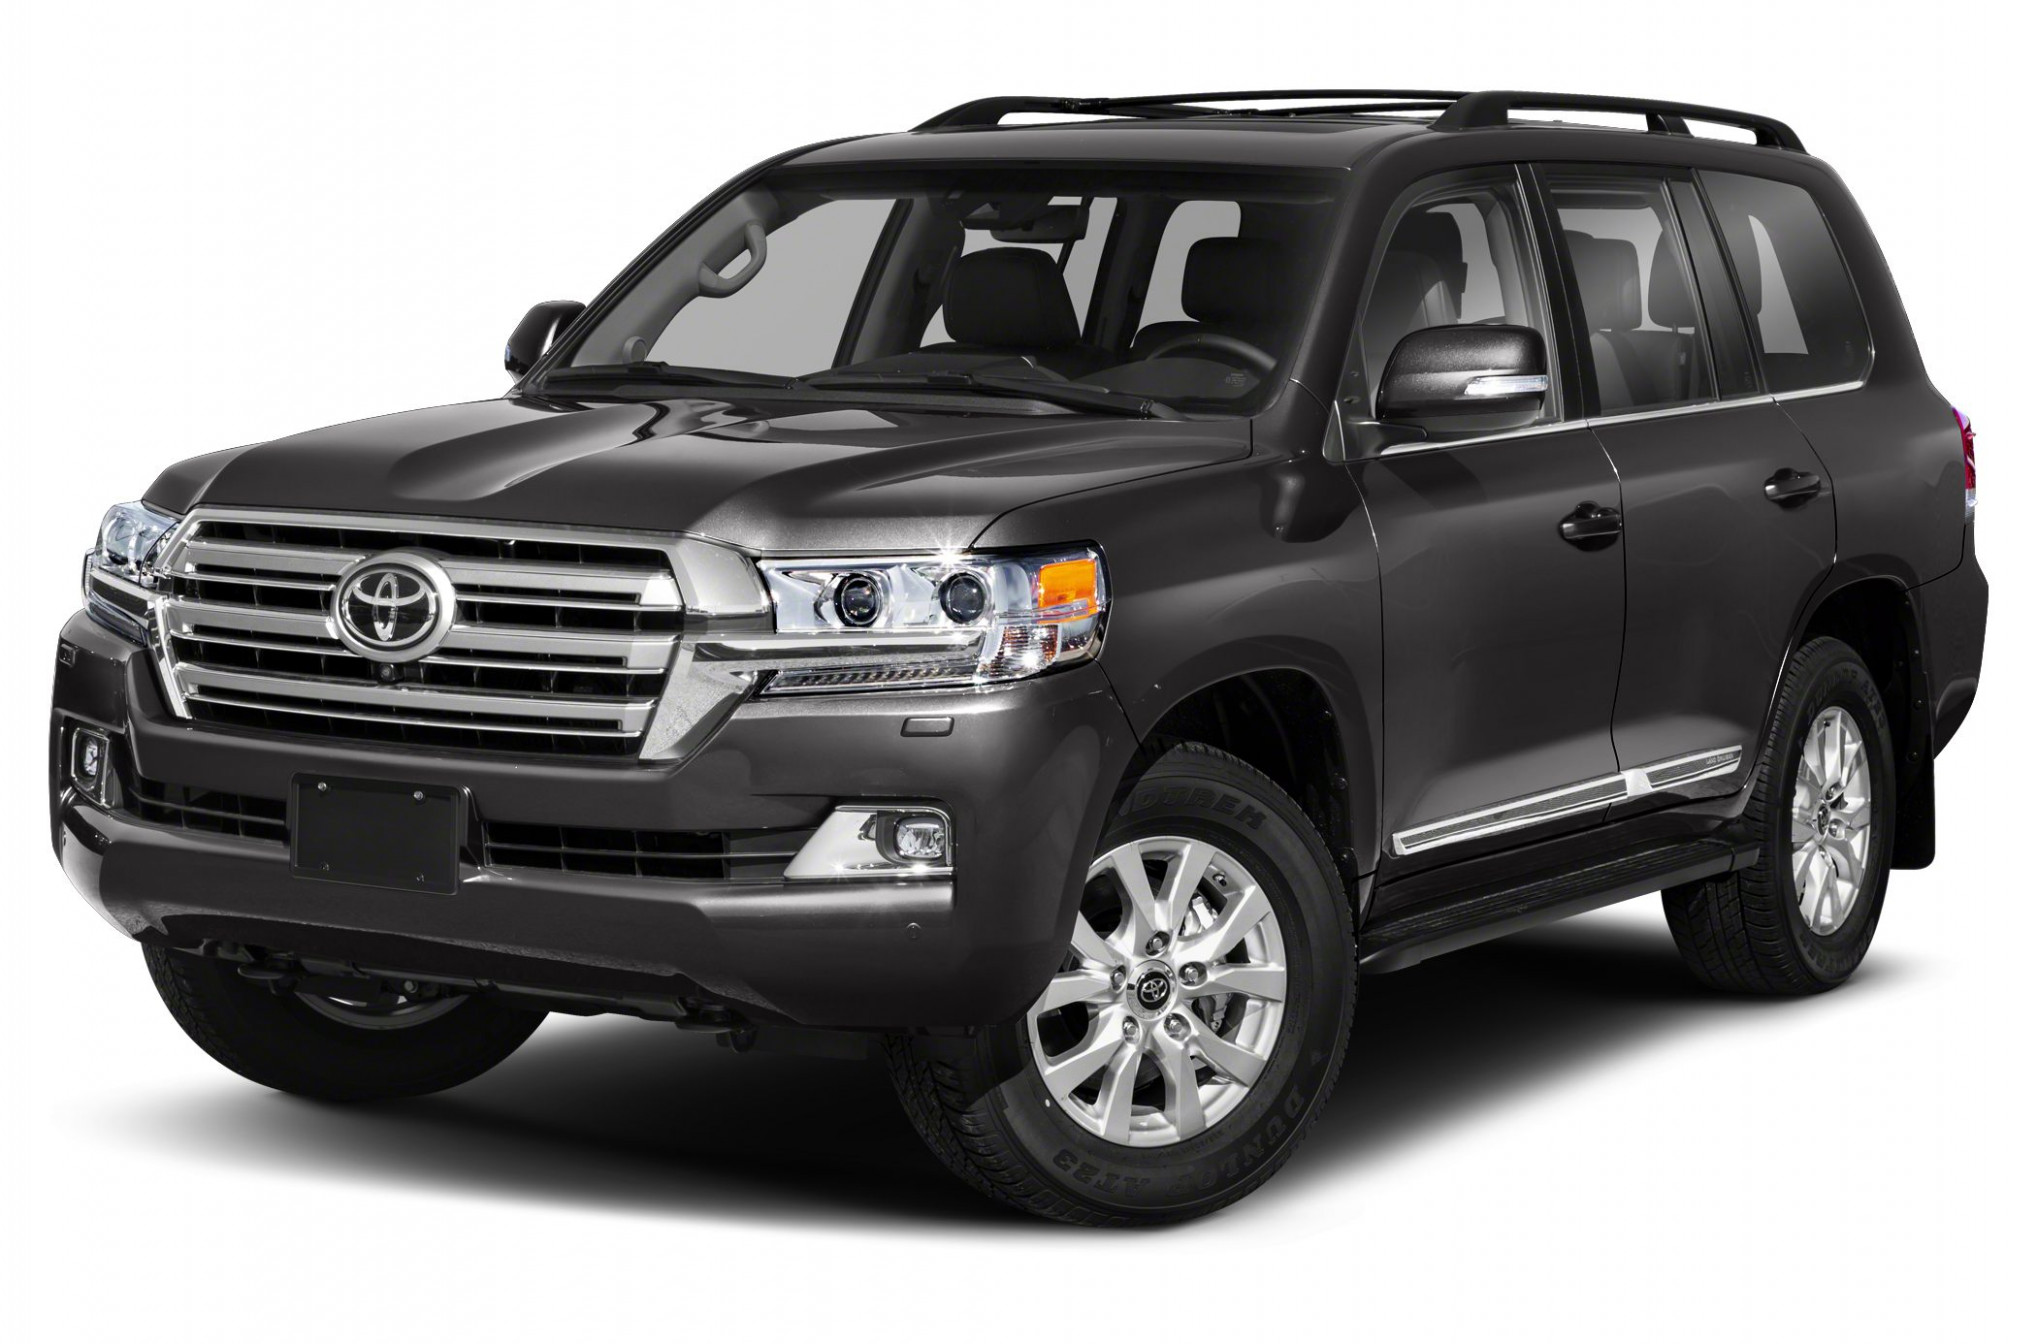 6 Toyota Land Cruiser Reviews, Specs, Photos